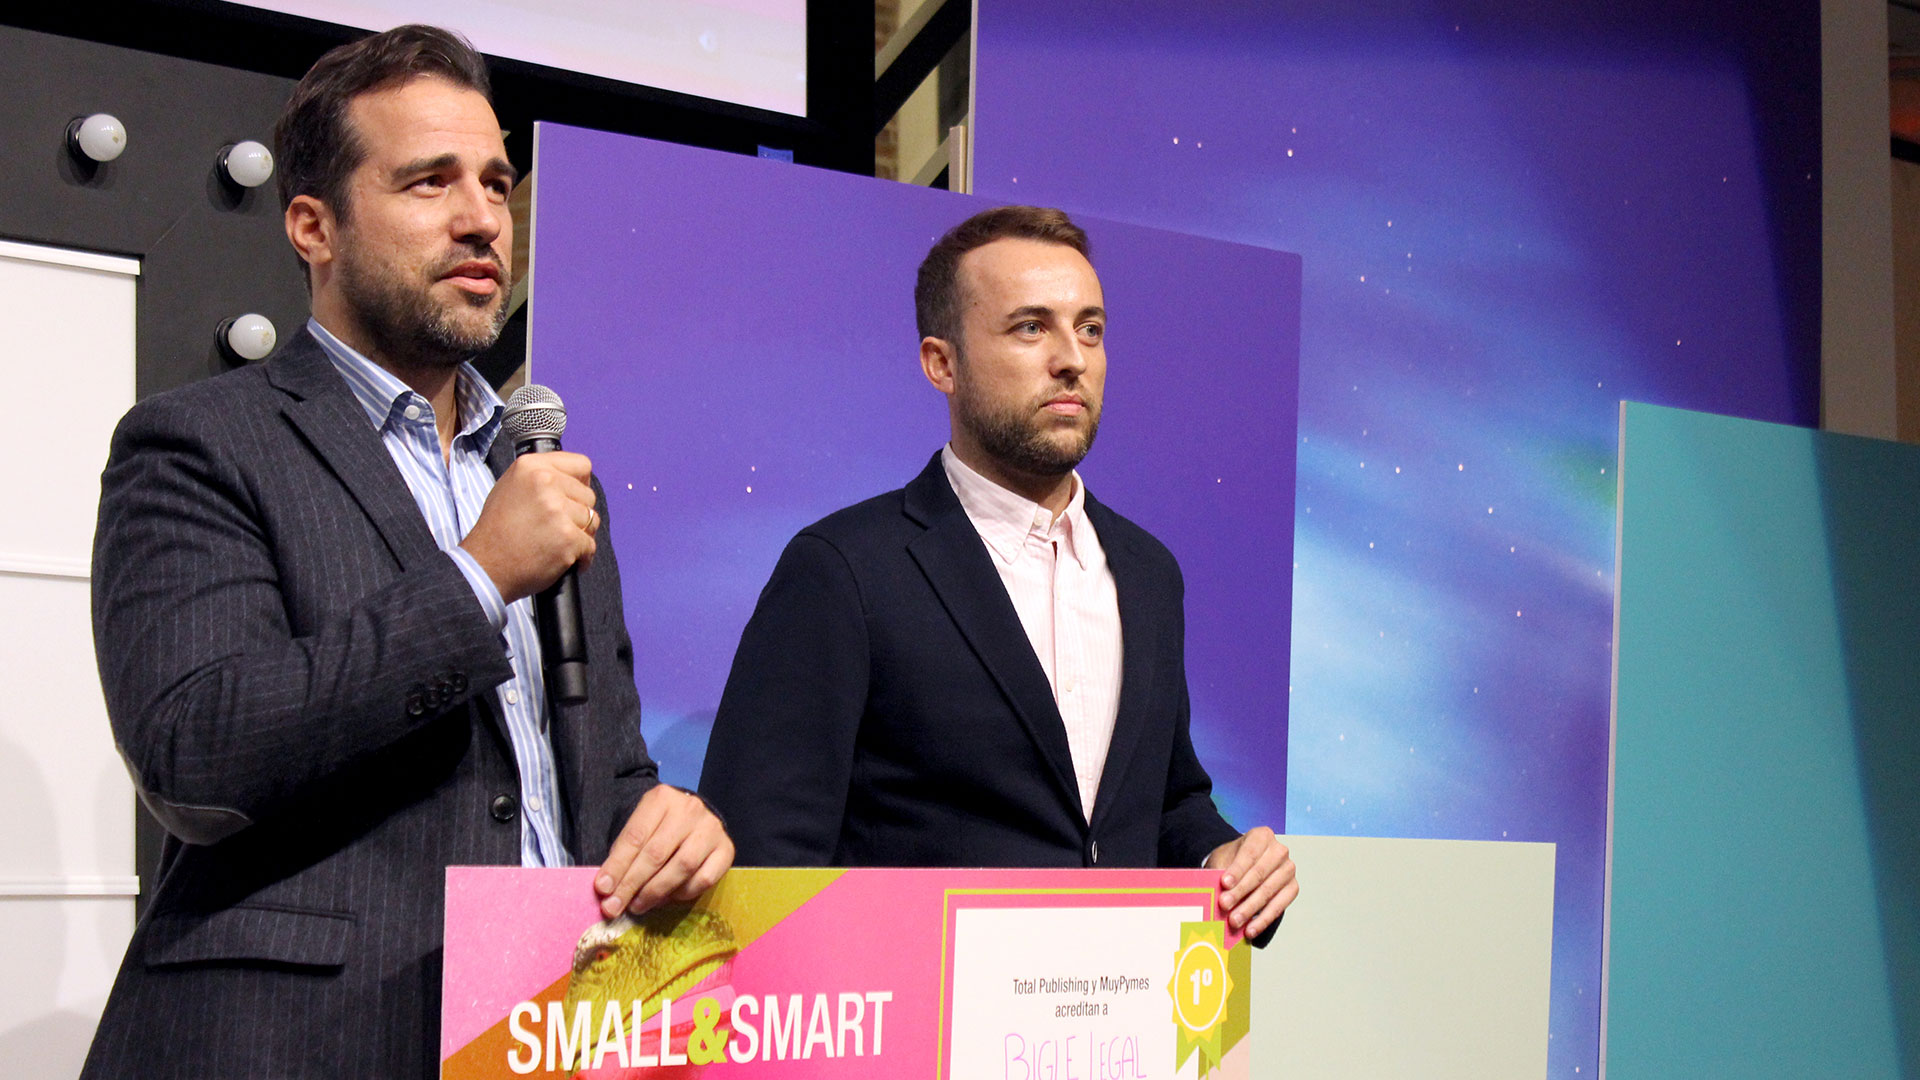 tpnet-small-smart-2016-evento-startups-primer-premio-bigle-legal-02